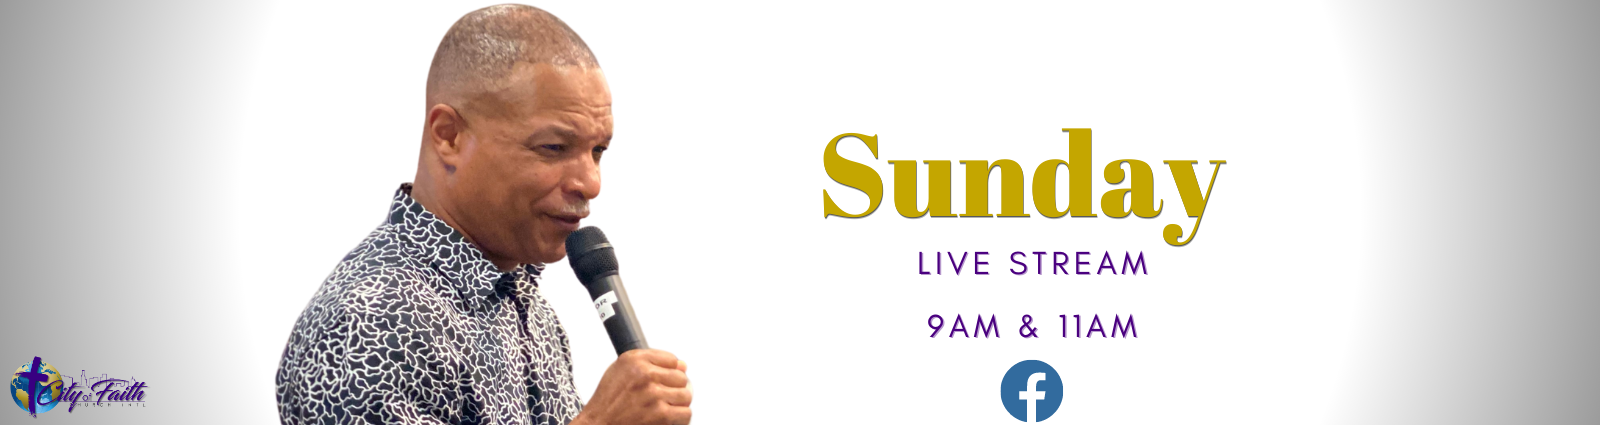 Sunday Live Stream With Pastor Robert Gardner